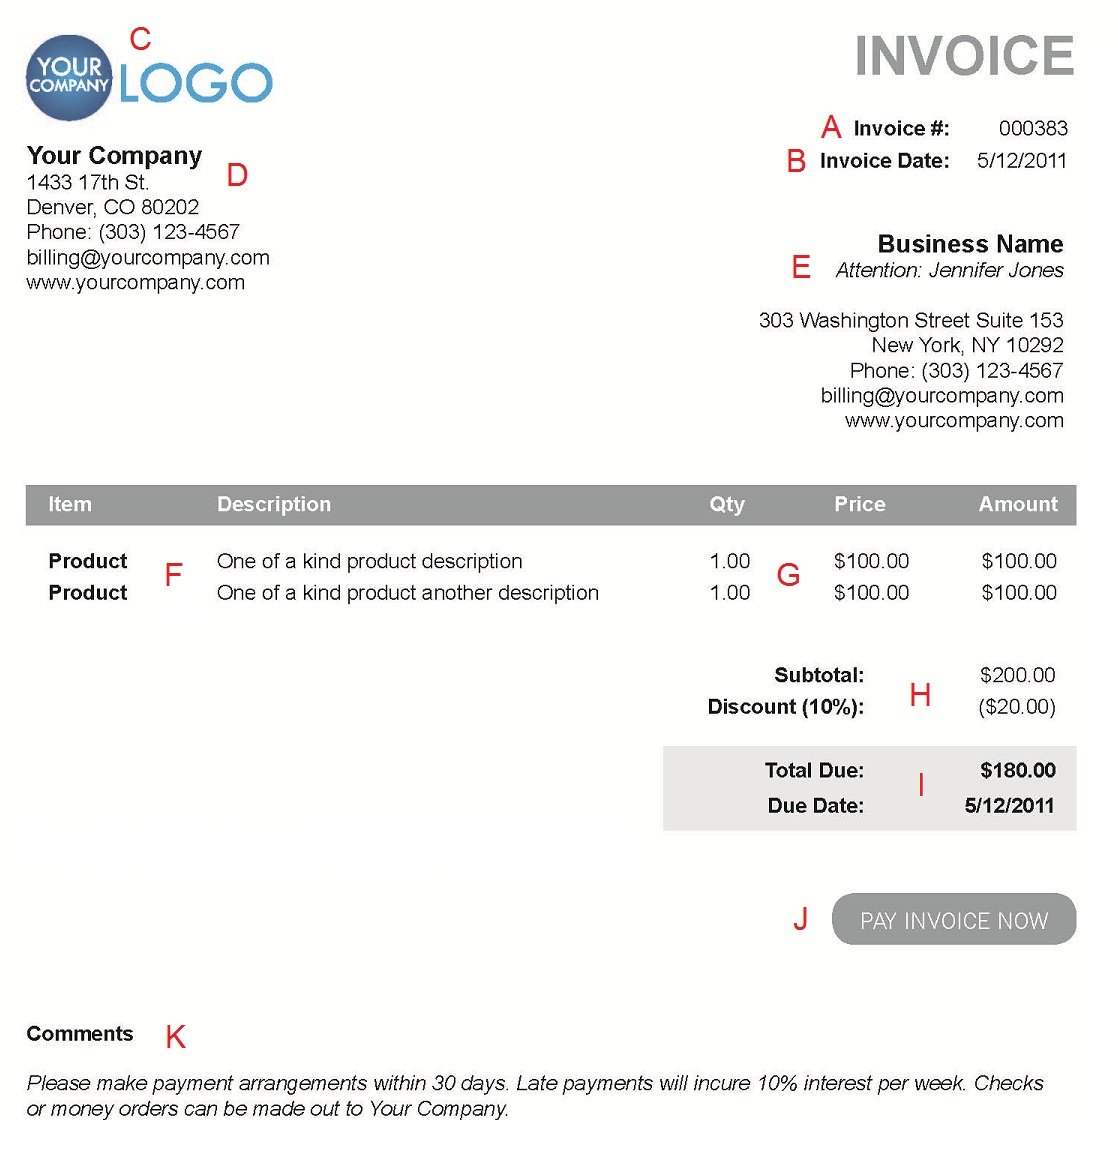 Picnictoimpeachus  Pretty The  Different Sections Of An Electronic Payment Invoice With Marvelous A  With Nice Gdr Global Depositary Receipt Also Taxi Bill Receipt In Addition What Is Sales Receipt And Fake Taxi Receipts As Well As Best Receipts Additionally Sample Official Receipt Template From Paysimplecom With Picnictoimpeachus  Marvelous The  Different Sections Of An Electronic Payment Invoice With Nice A  And Pretty Gdr Global Depositary Receipt Also Taxi Bill Receipt In Addition What Is Sales Receipt From Paysimplecom